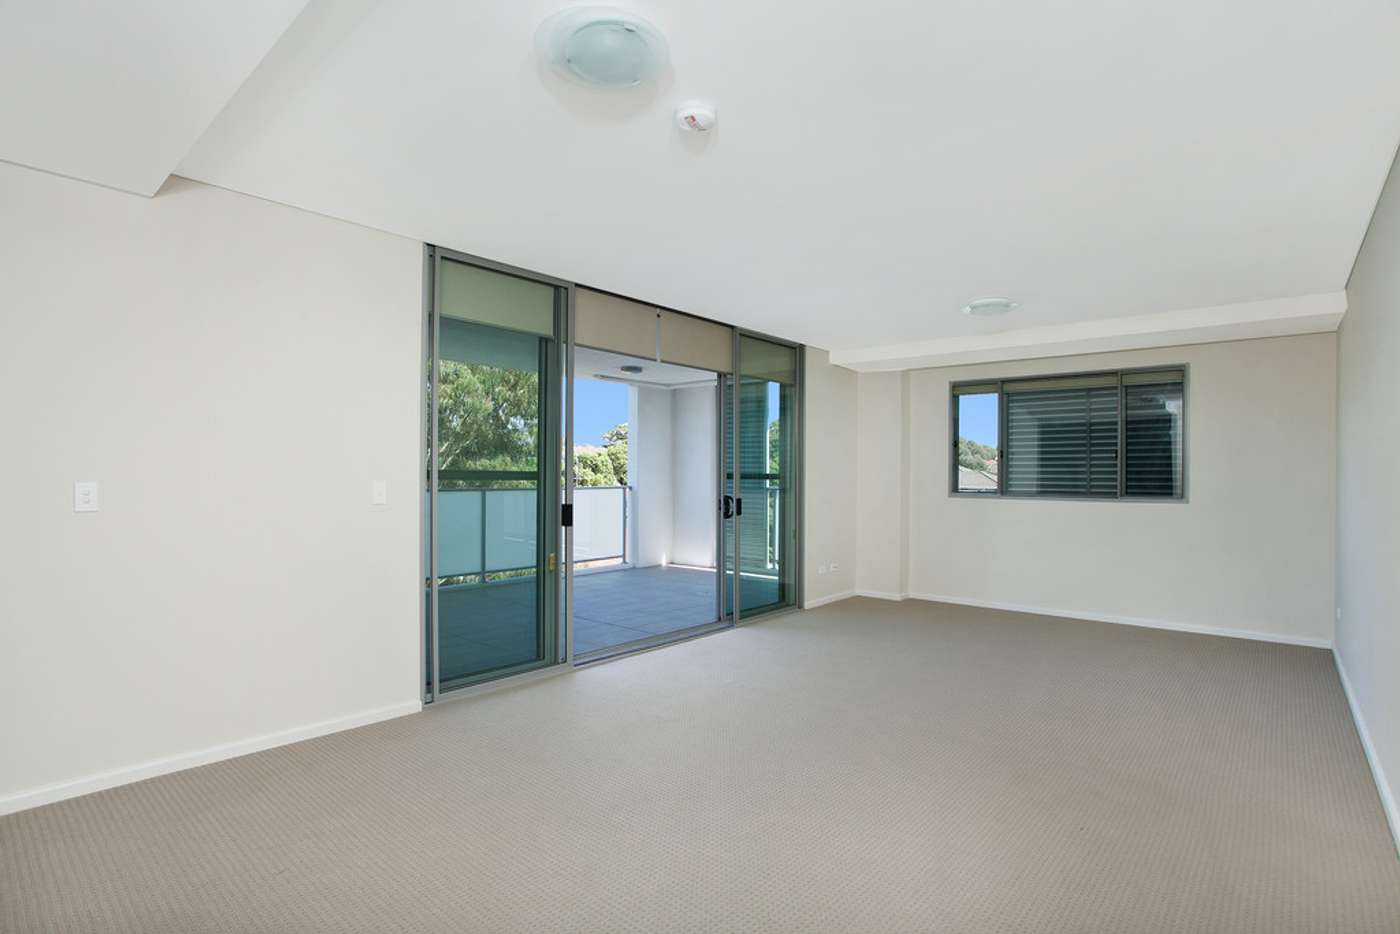 Main view of Homely apartment listing, 2329 - KING EDWARD STREET, Rockdale NSW 2216